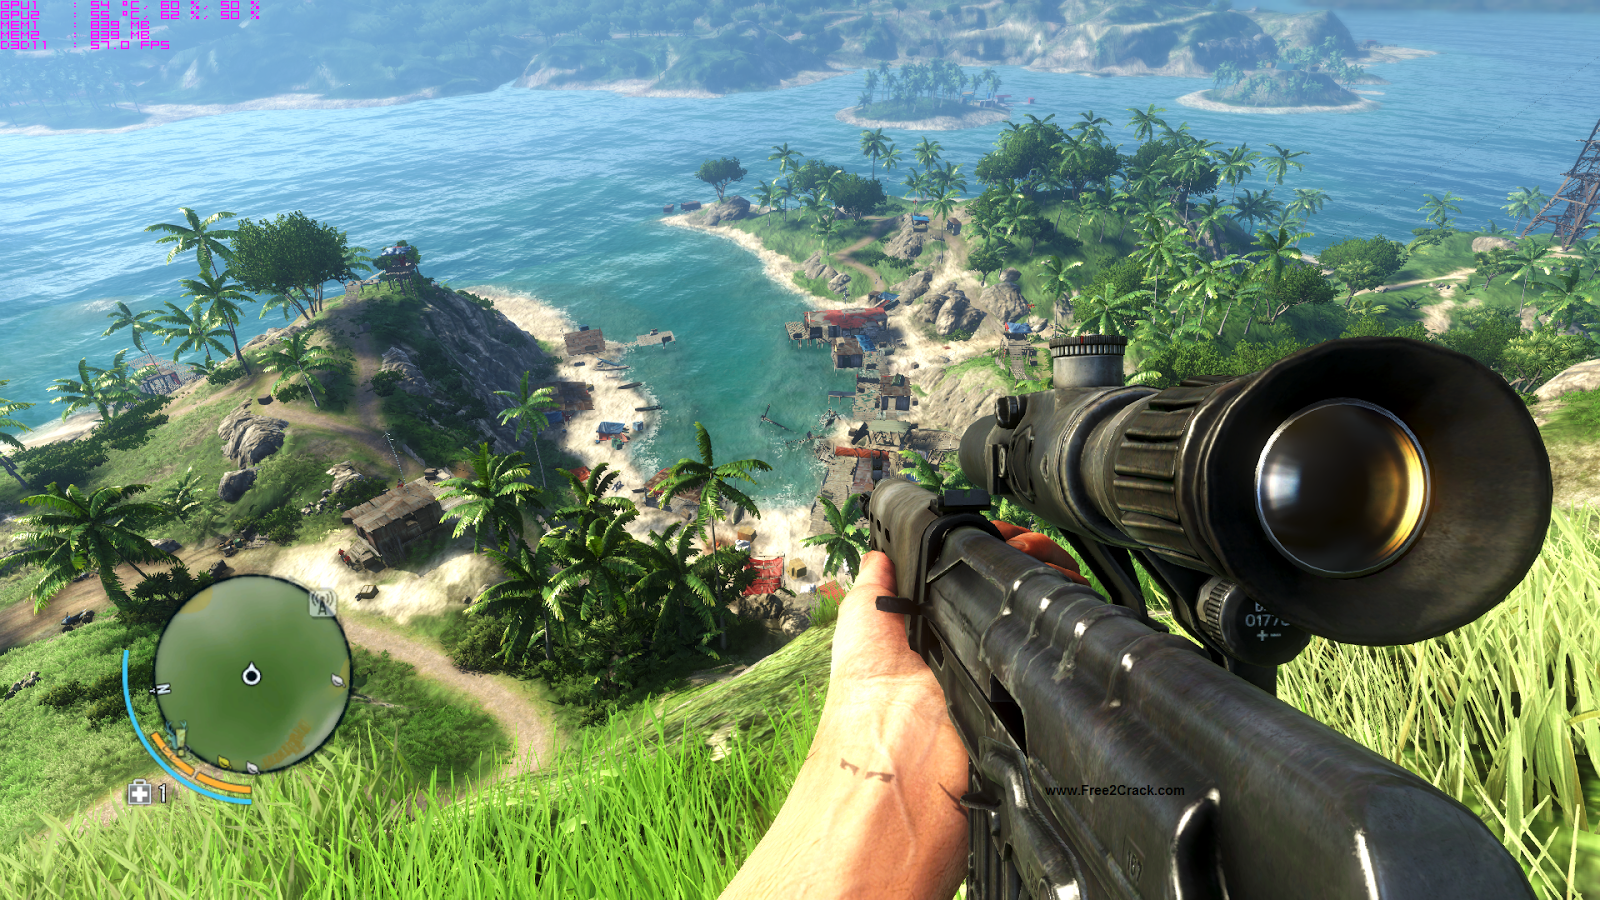 Far Cry 3 Pc Game Free Download Fully Full Version Games